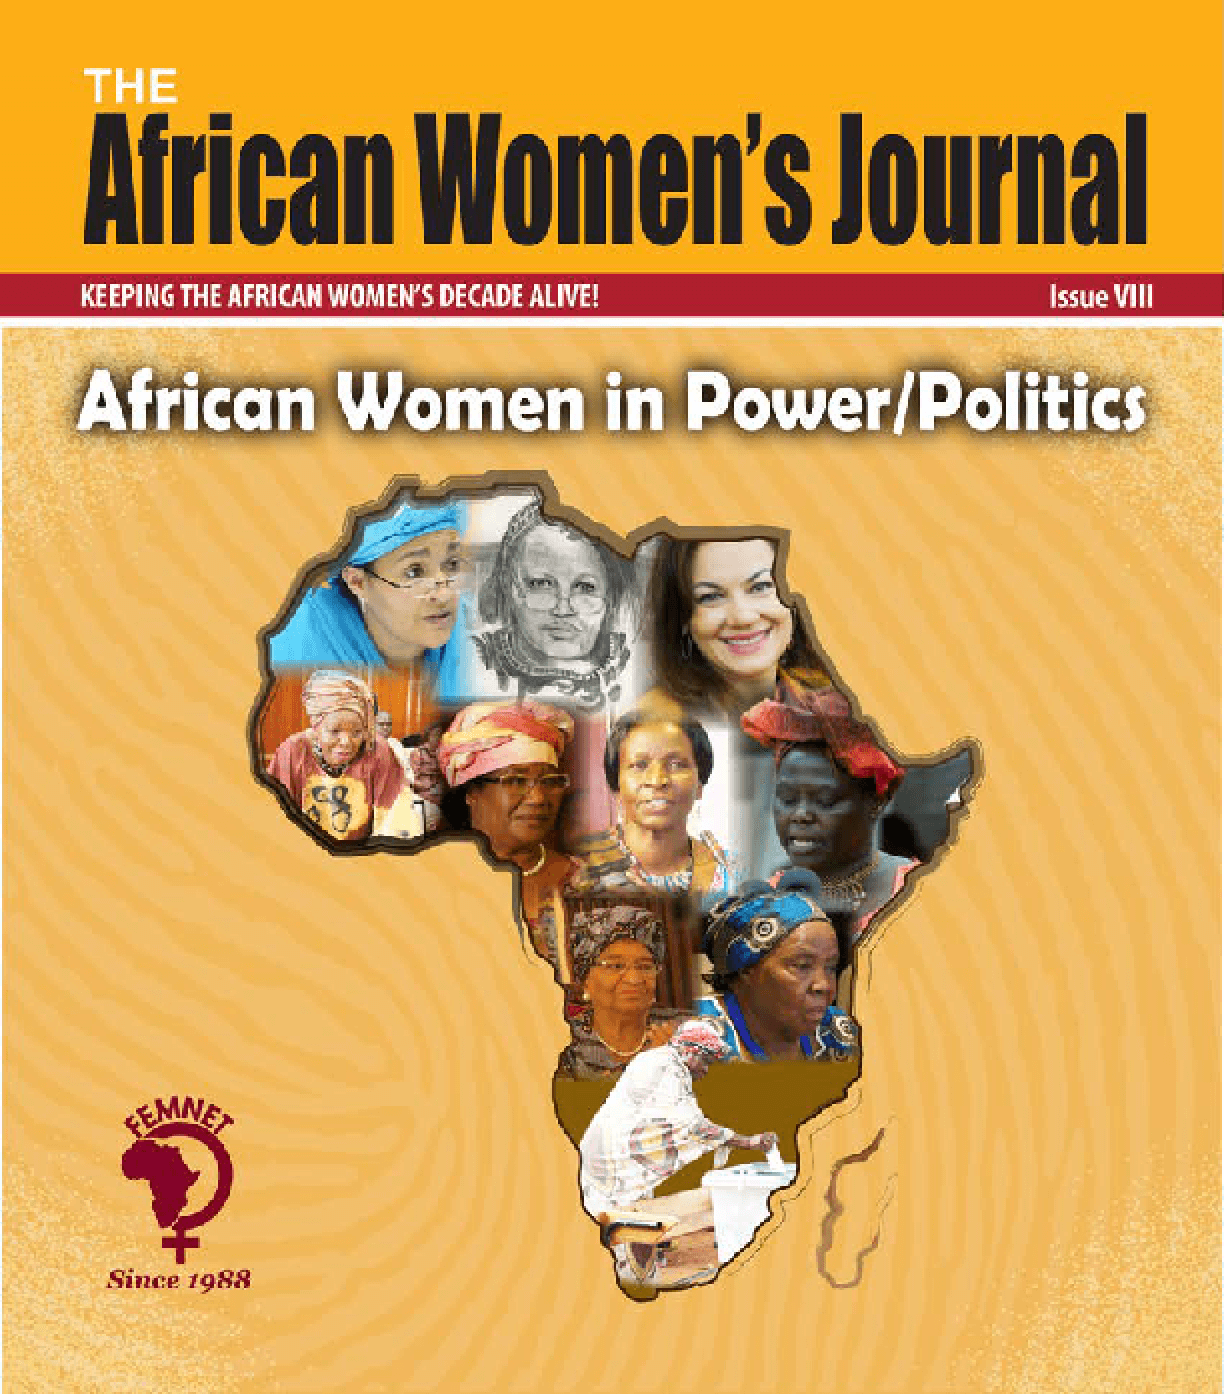 African Women's Journal: African Women in Power/Politics